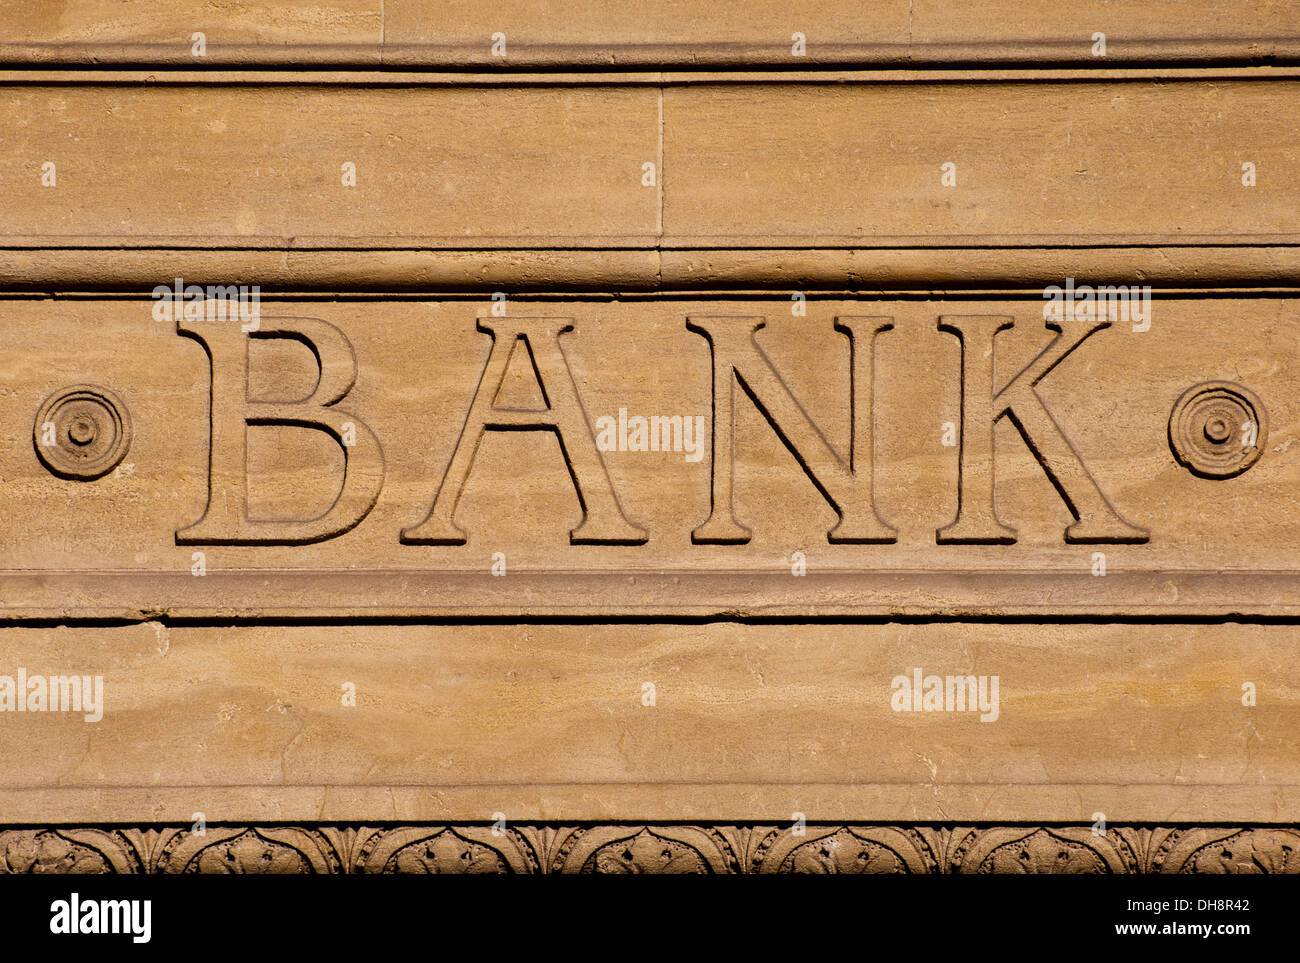 Abstract Bank Sign Carved in Stone Capital Letters - Stock Image